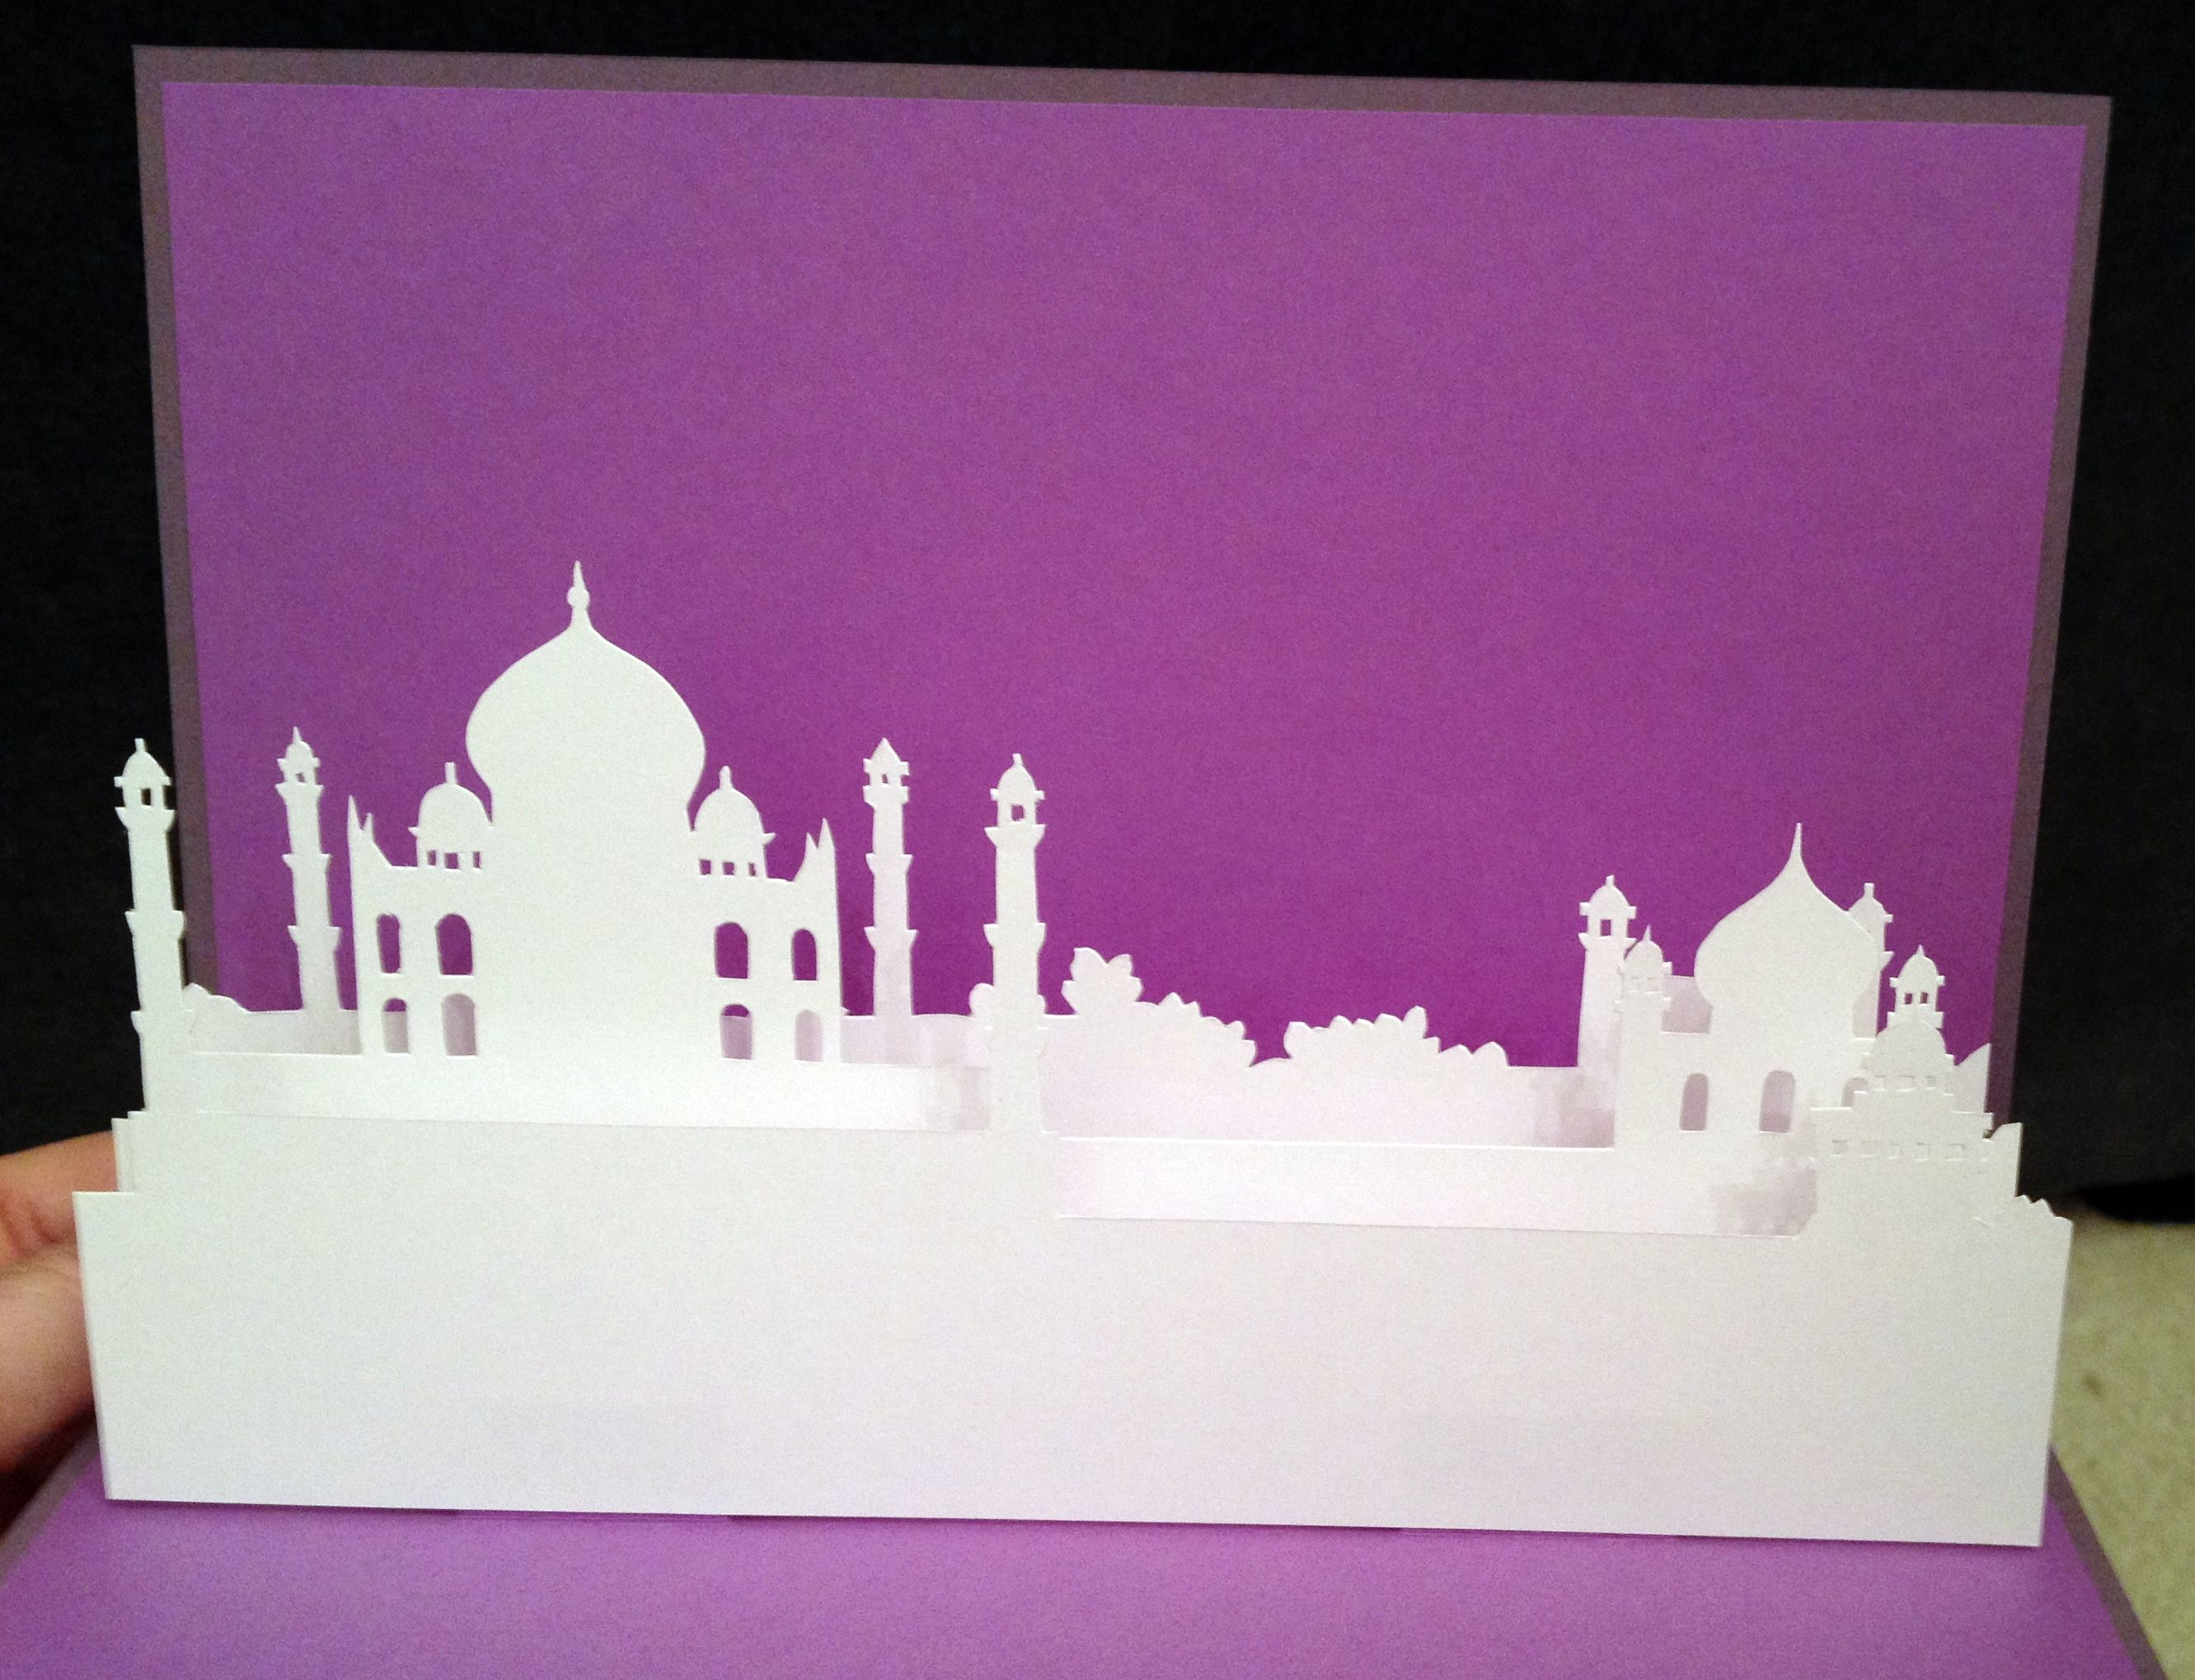 Taj Mahal Pop Up Card Template From Paysages En Pop Up Pop Up Card Templates Pop Up Cards Pop Up